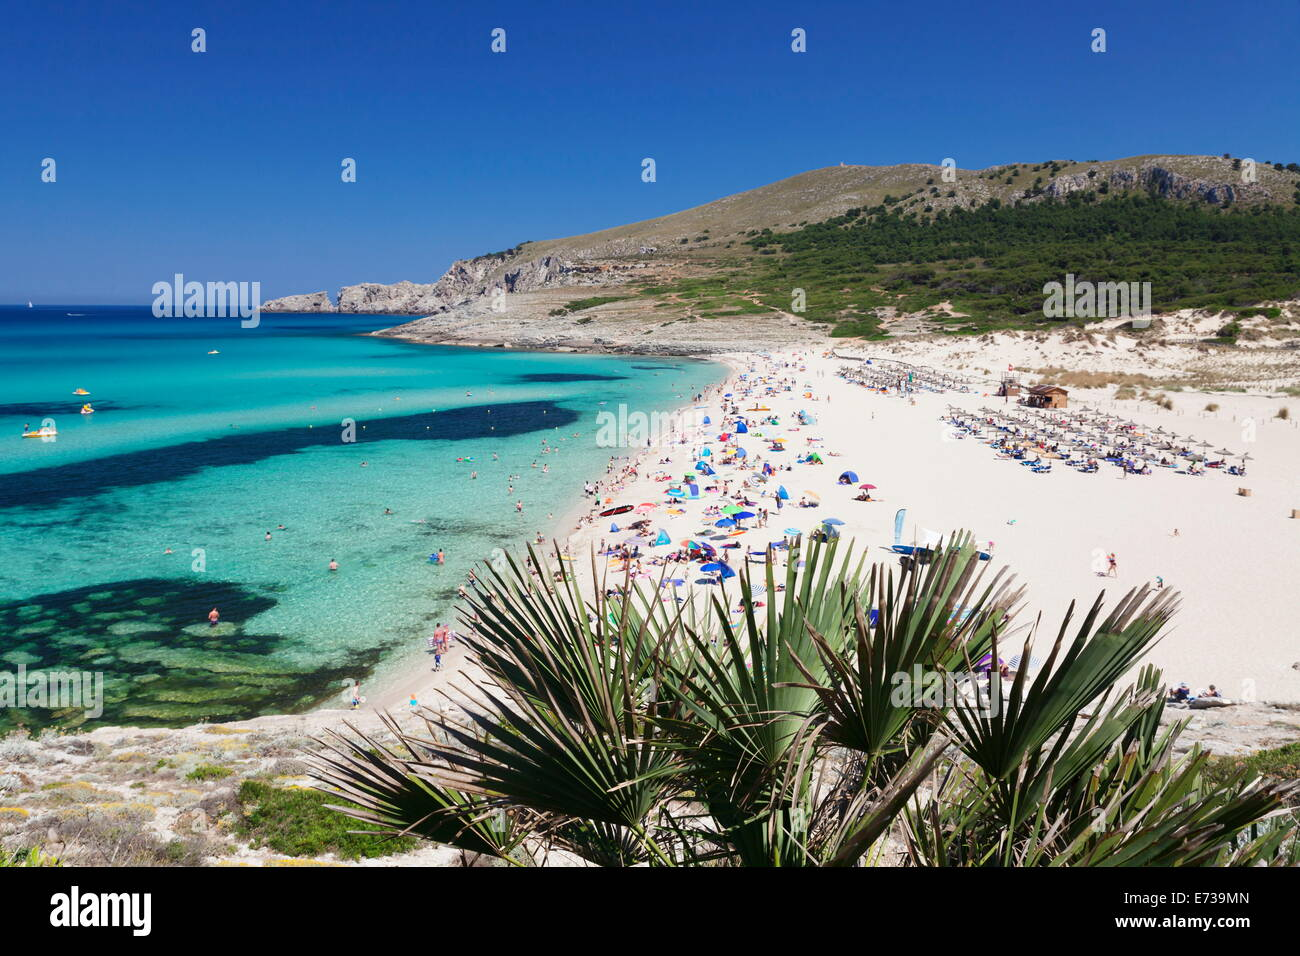 Beach and bay cala mesquita capdepera majorca mallorca balearic stock photo royalty free - Mallorca islas baleares ...